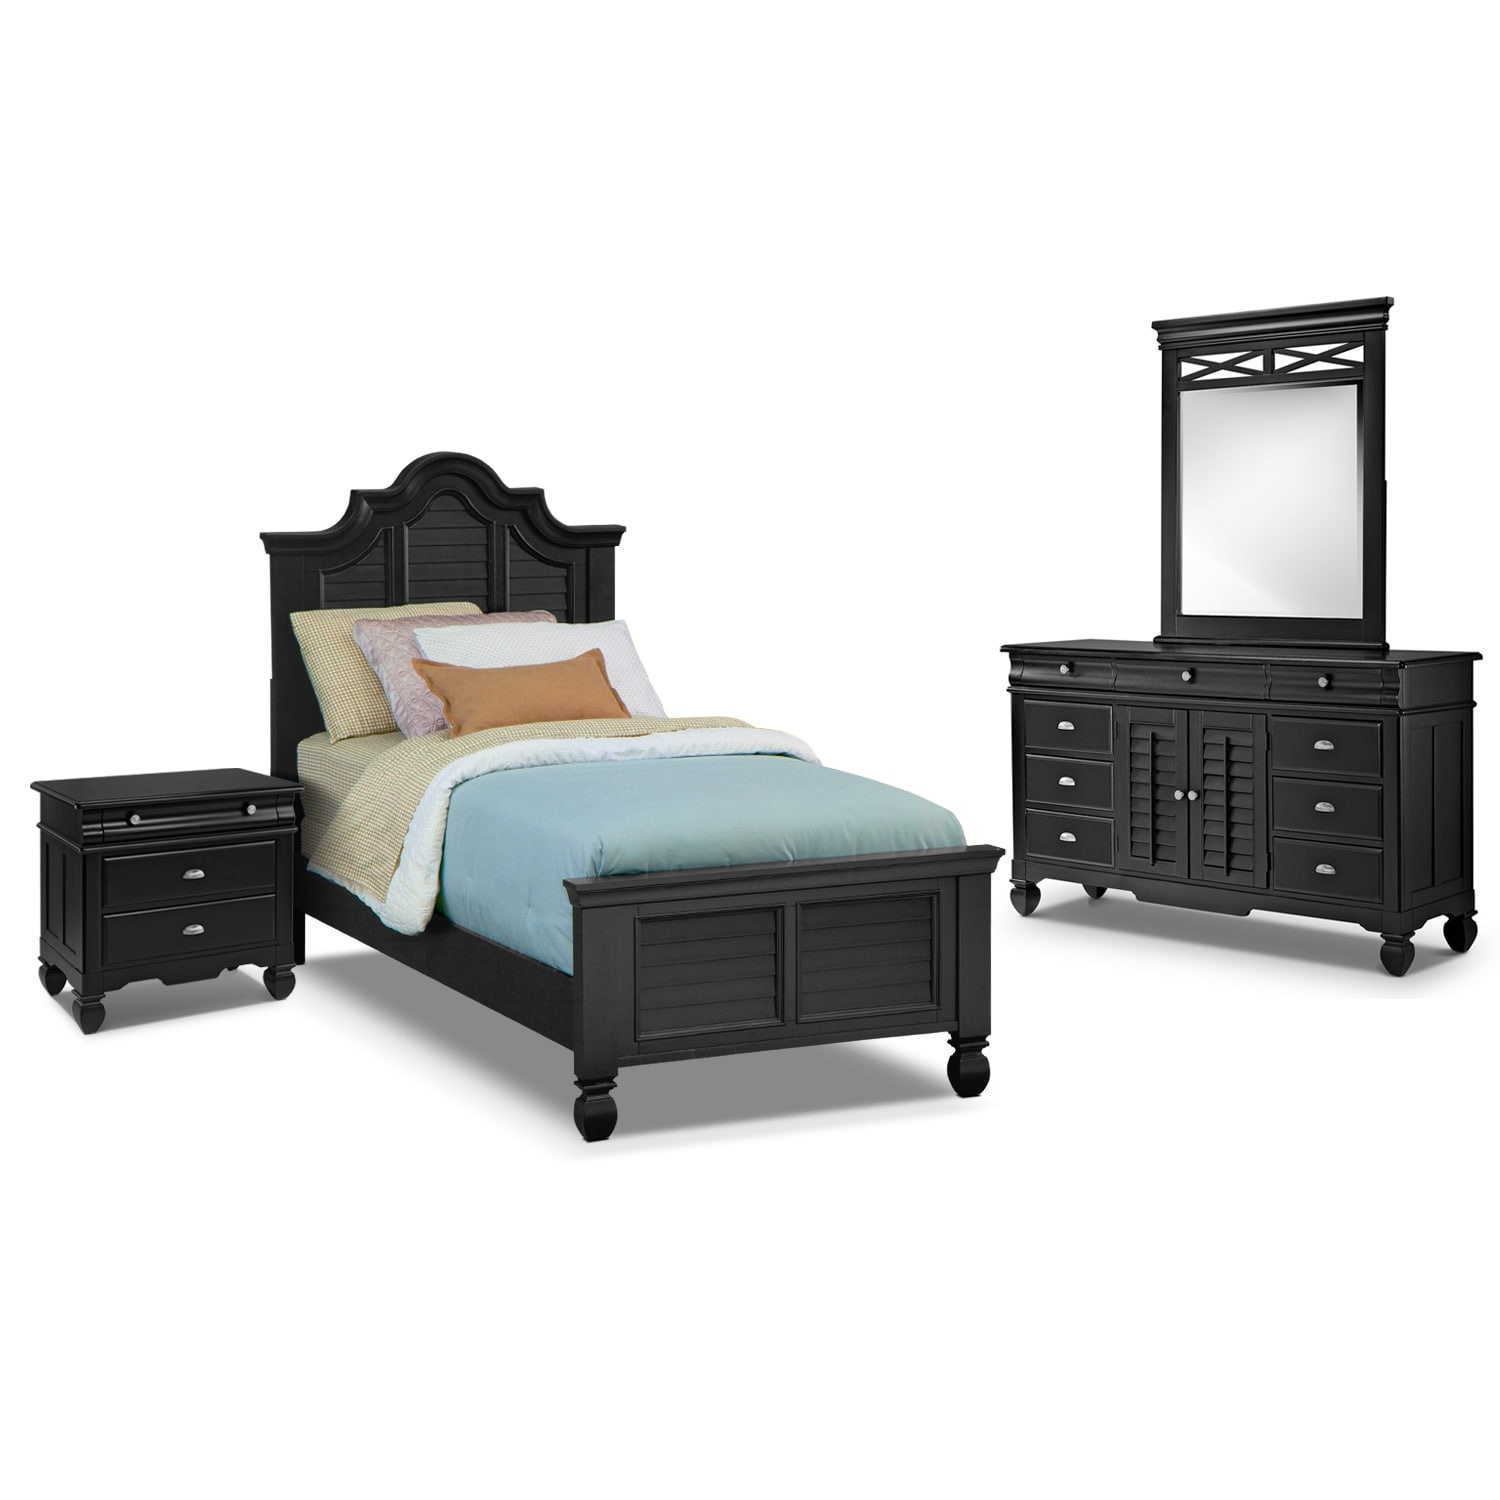 Plantation Cove 6-Piece Twin Bedroom Set - Black